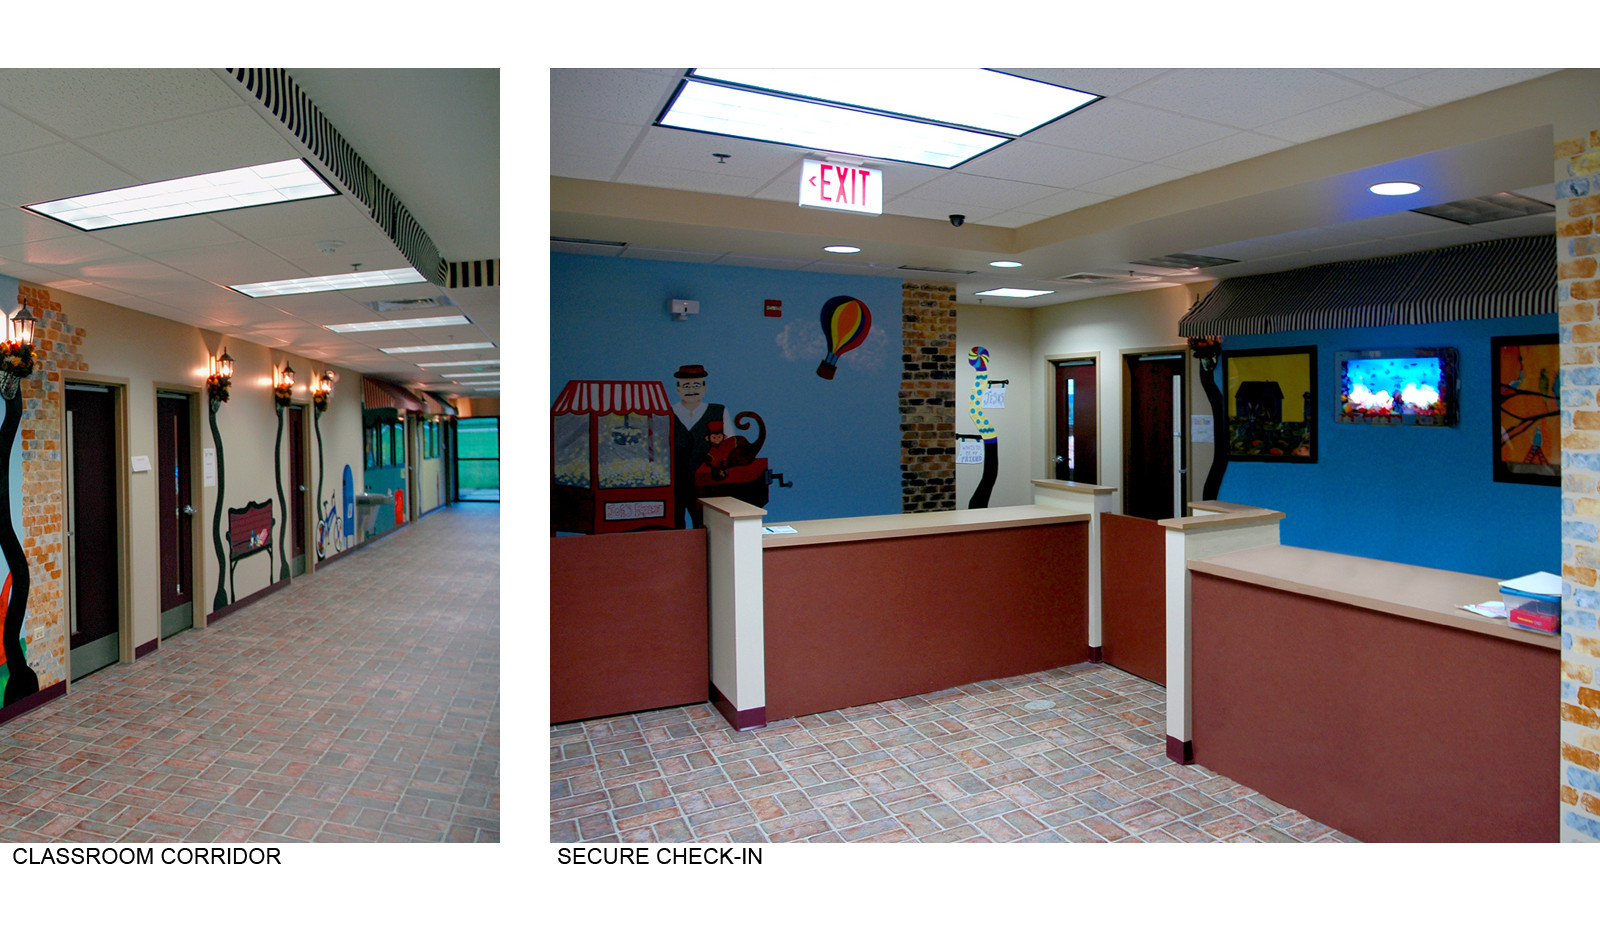 Classroom Corridor and Check in